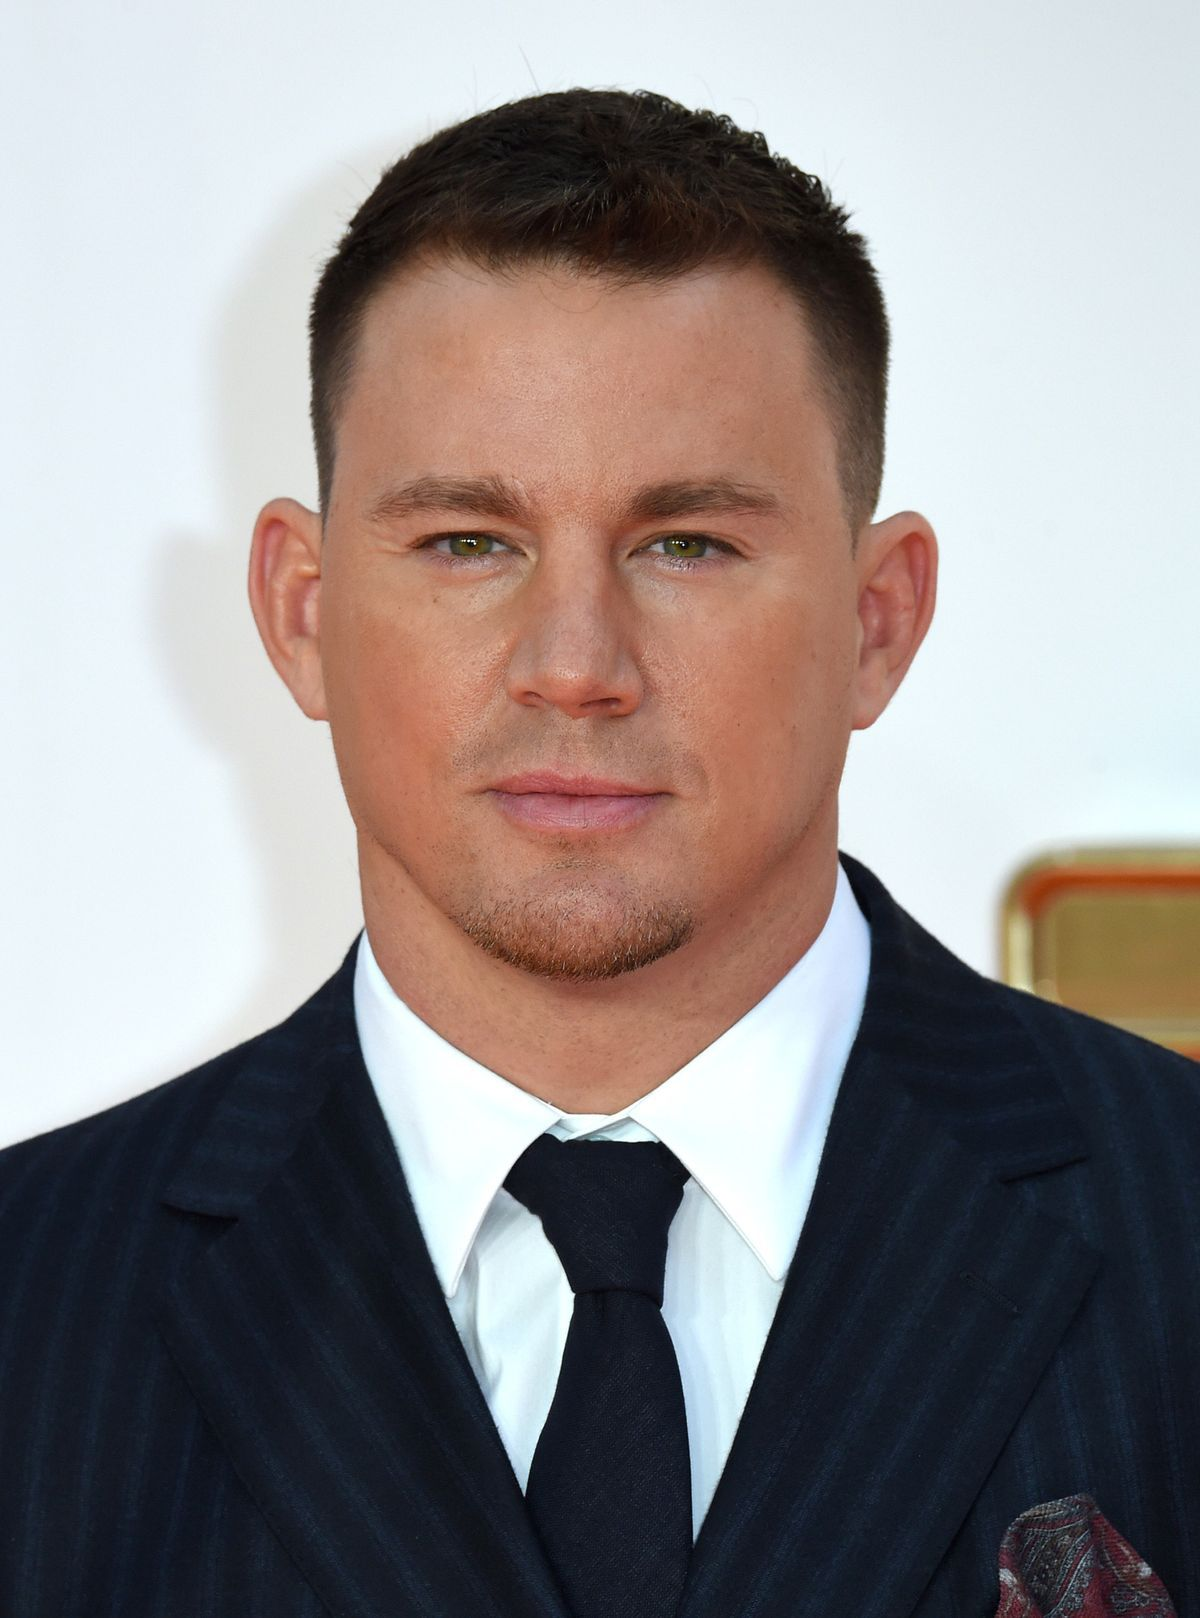 Channing Tatum will never work with the Weinstein Company ever again